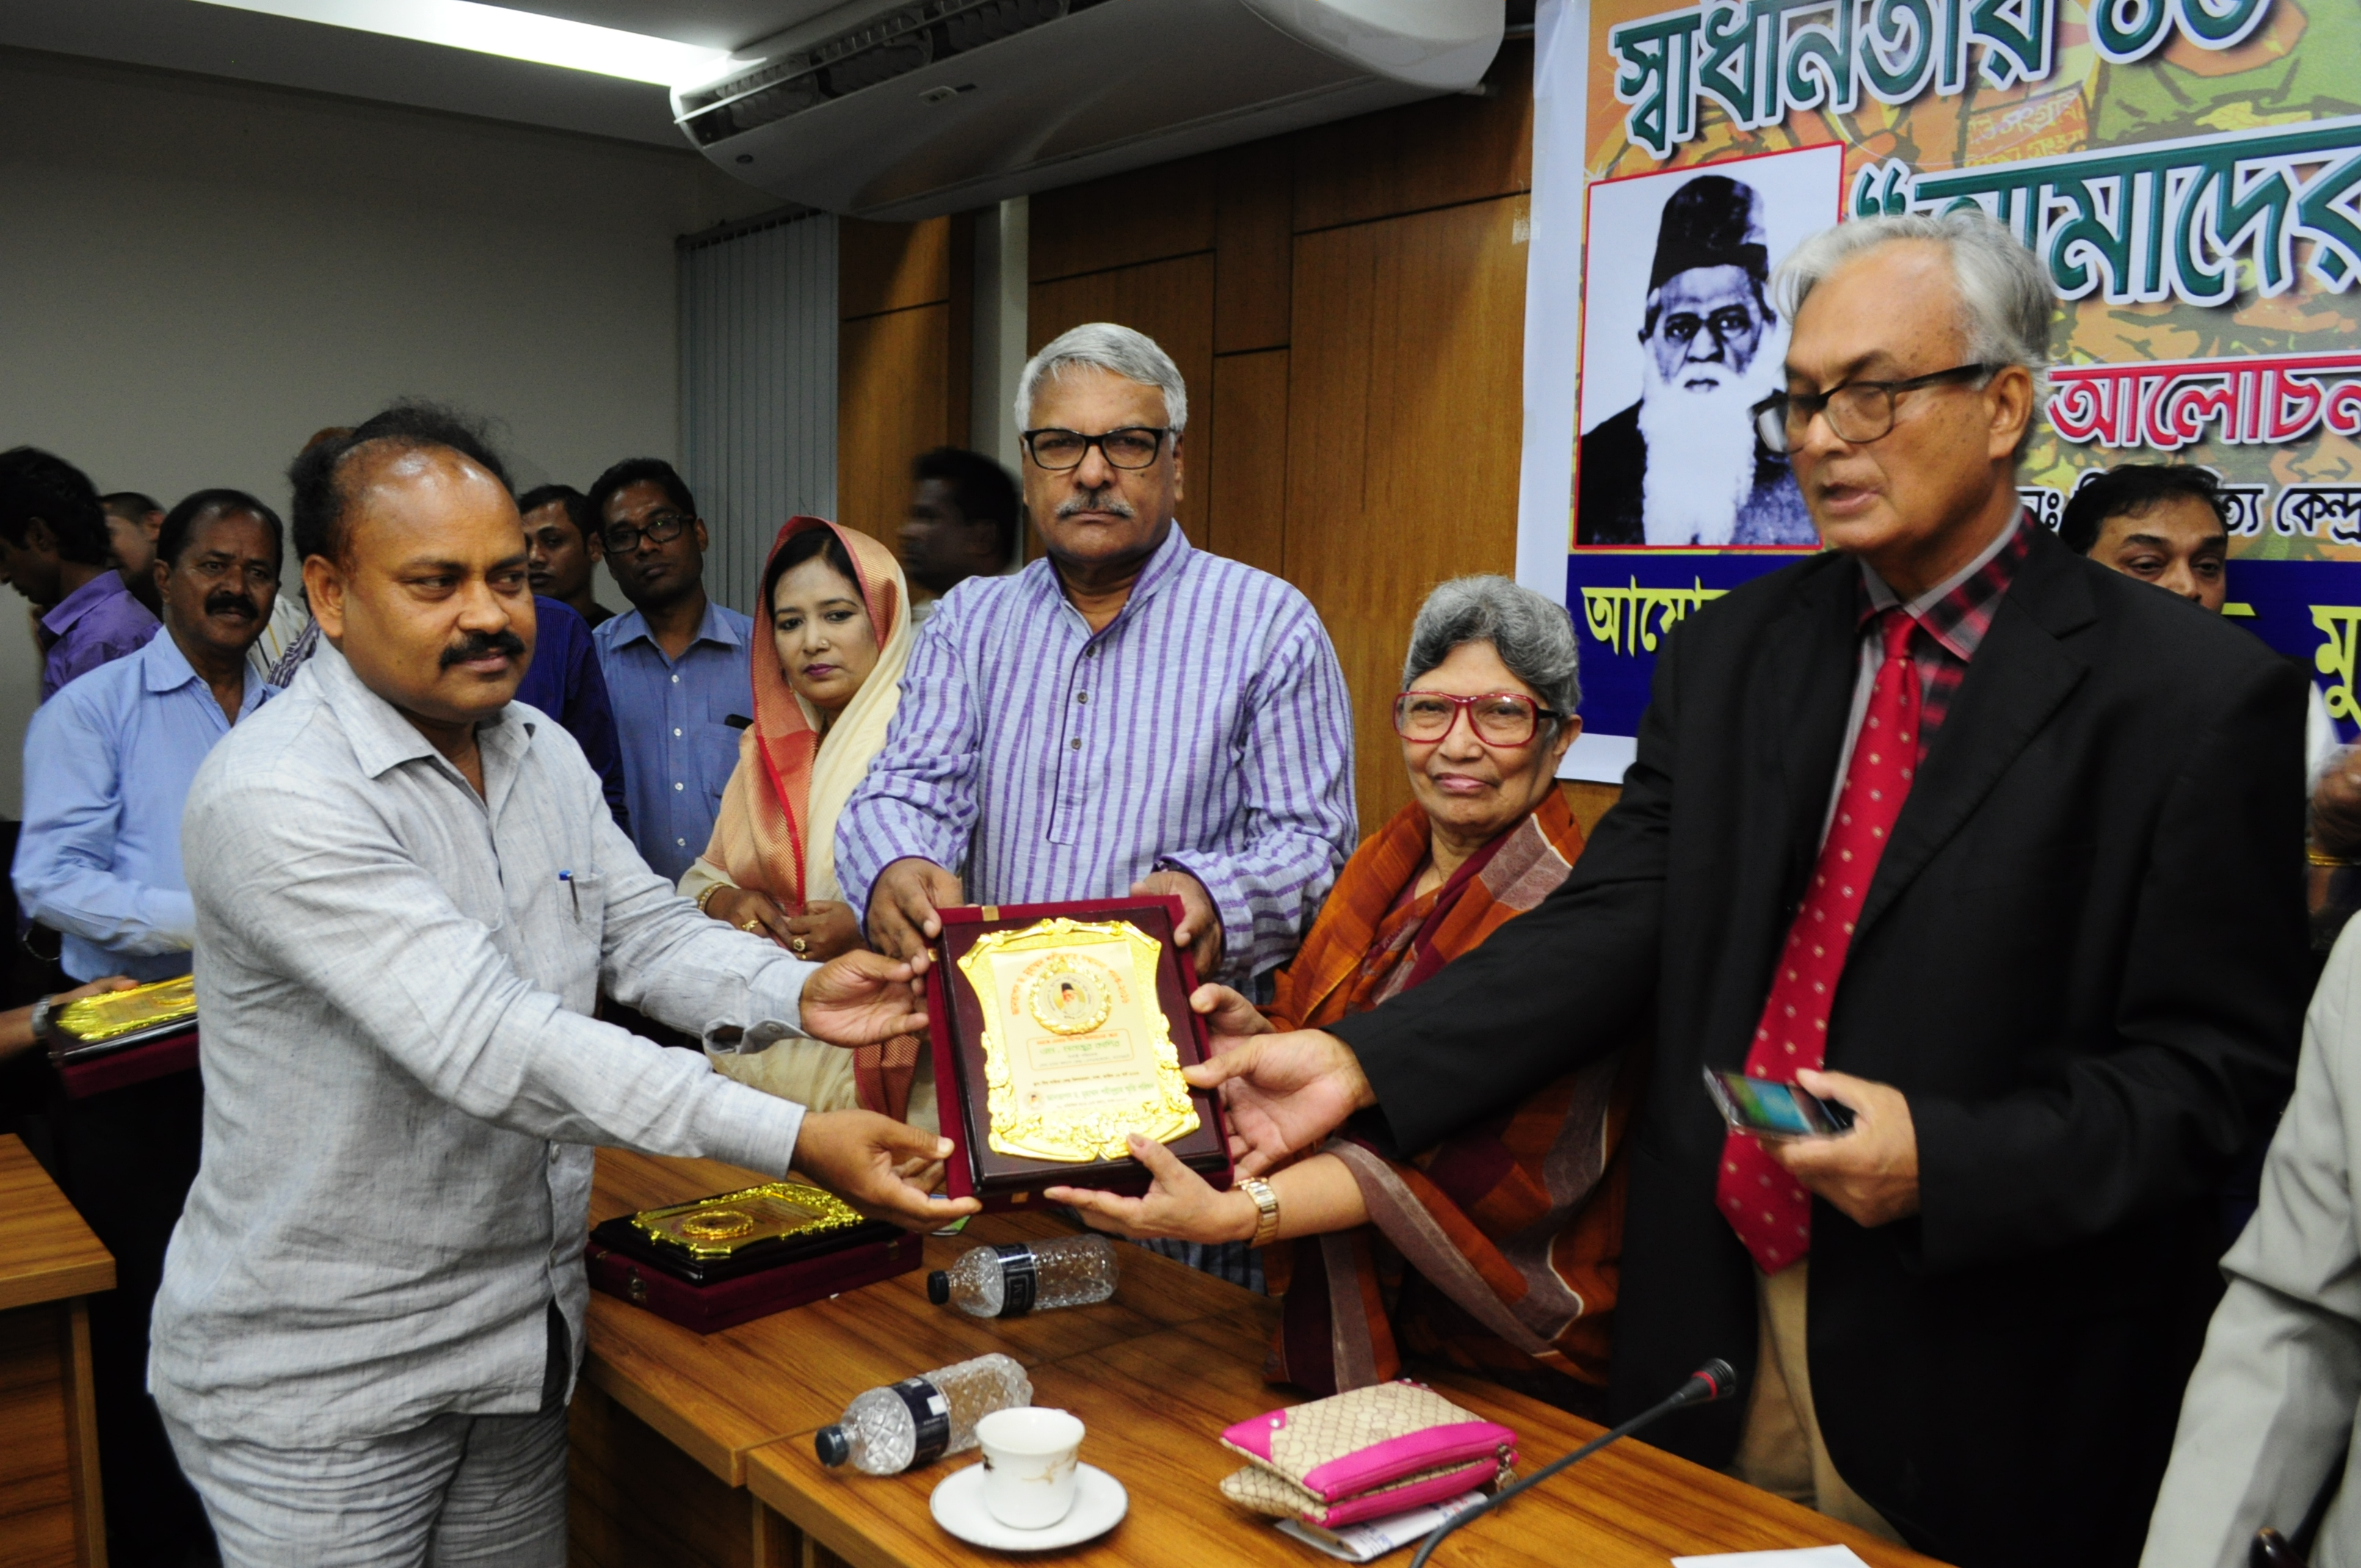 M. Manjur Kadir, ED SMKK is receiving DR. Mohammad Shahidullah award